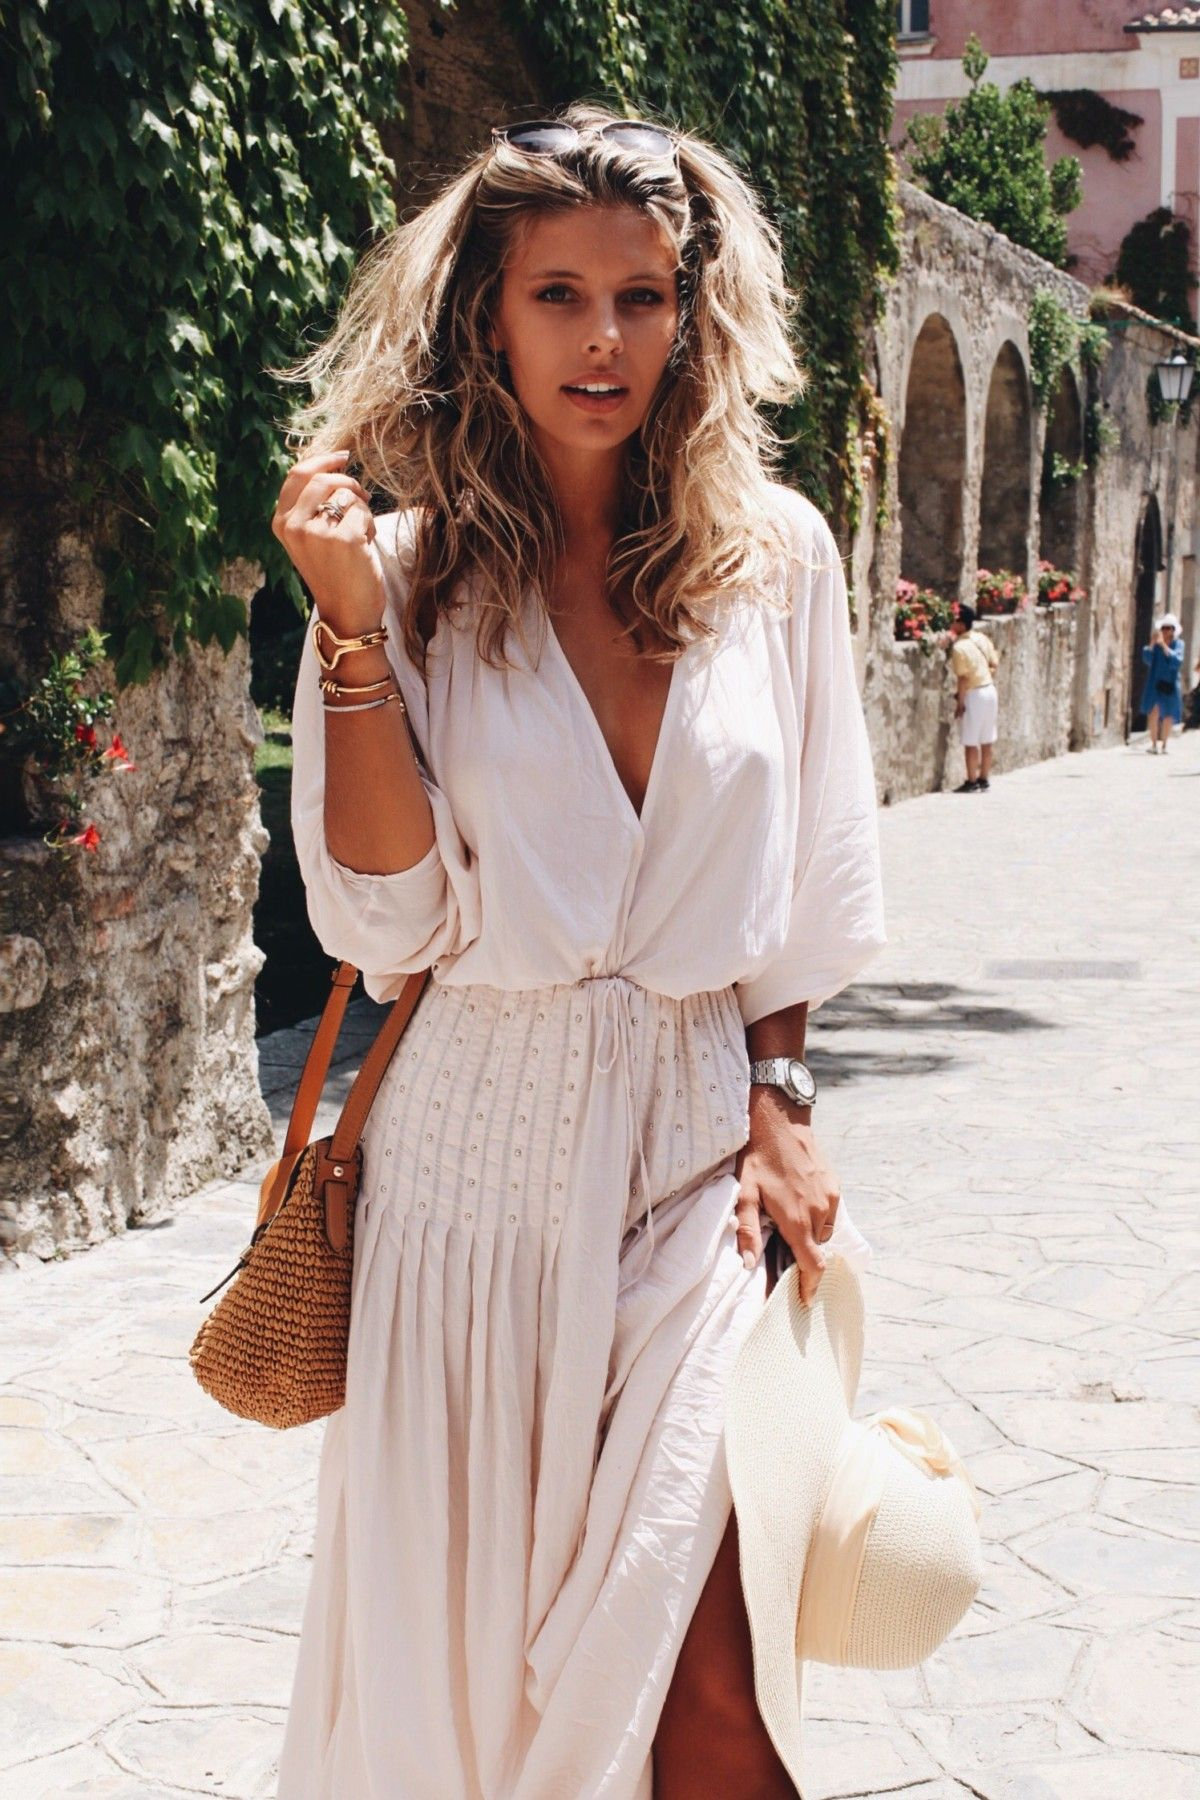 This Italian It Girl Is Your New Style Muse: Fashion, Style, Italy Fashion